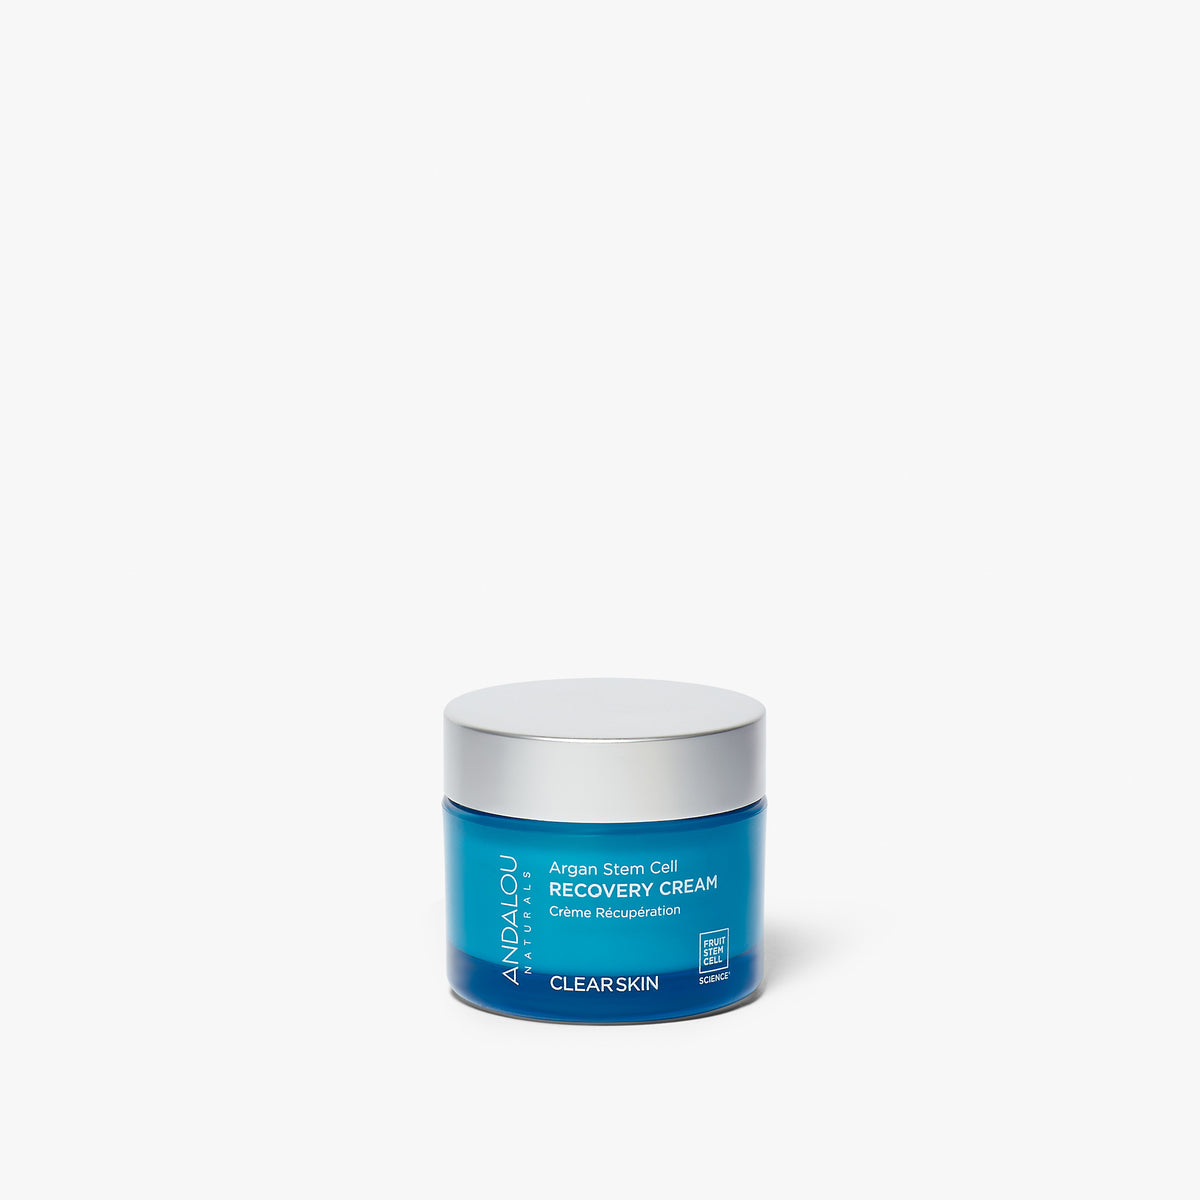 Clear Skin Argan Stem Cell Recovery Cream